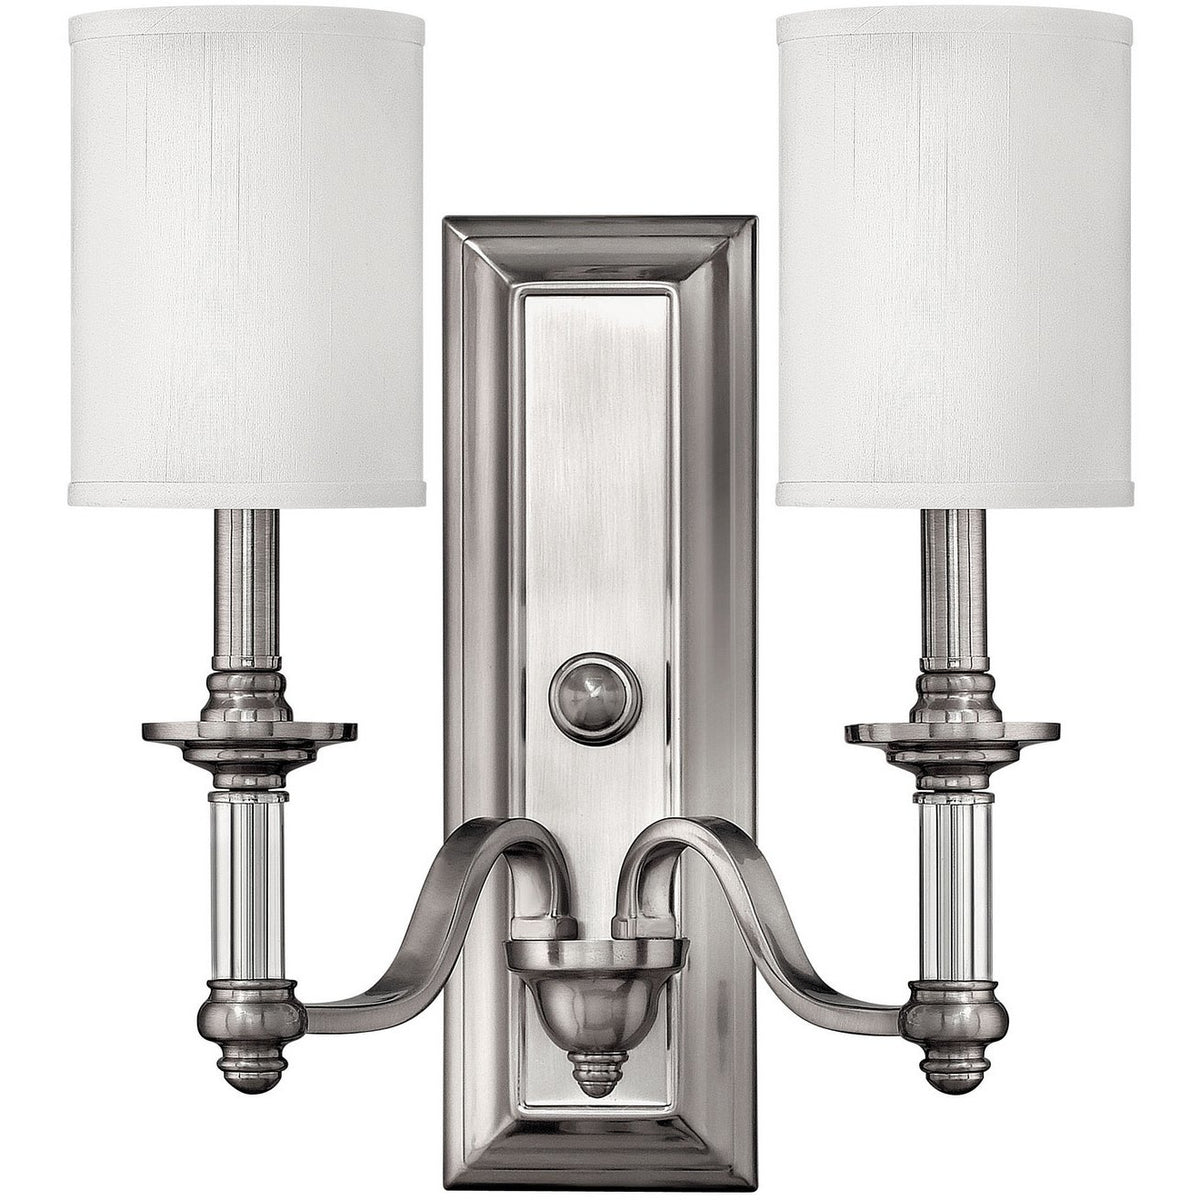 Hinkley Canada - 4792BN - Two Light Wall Sconce - Sussex - Brushed Nickel